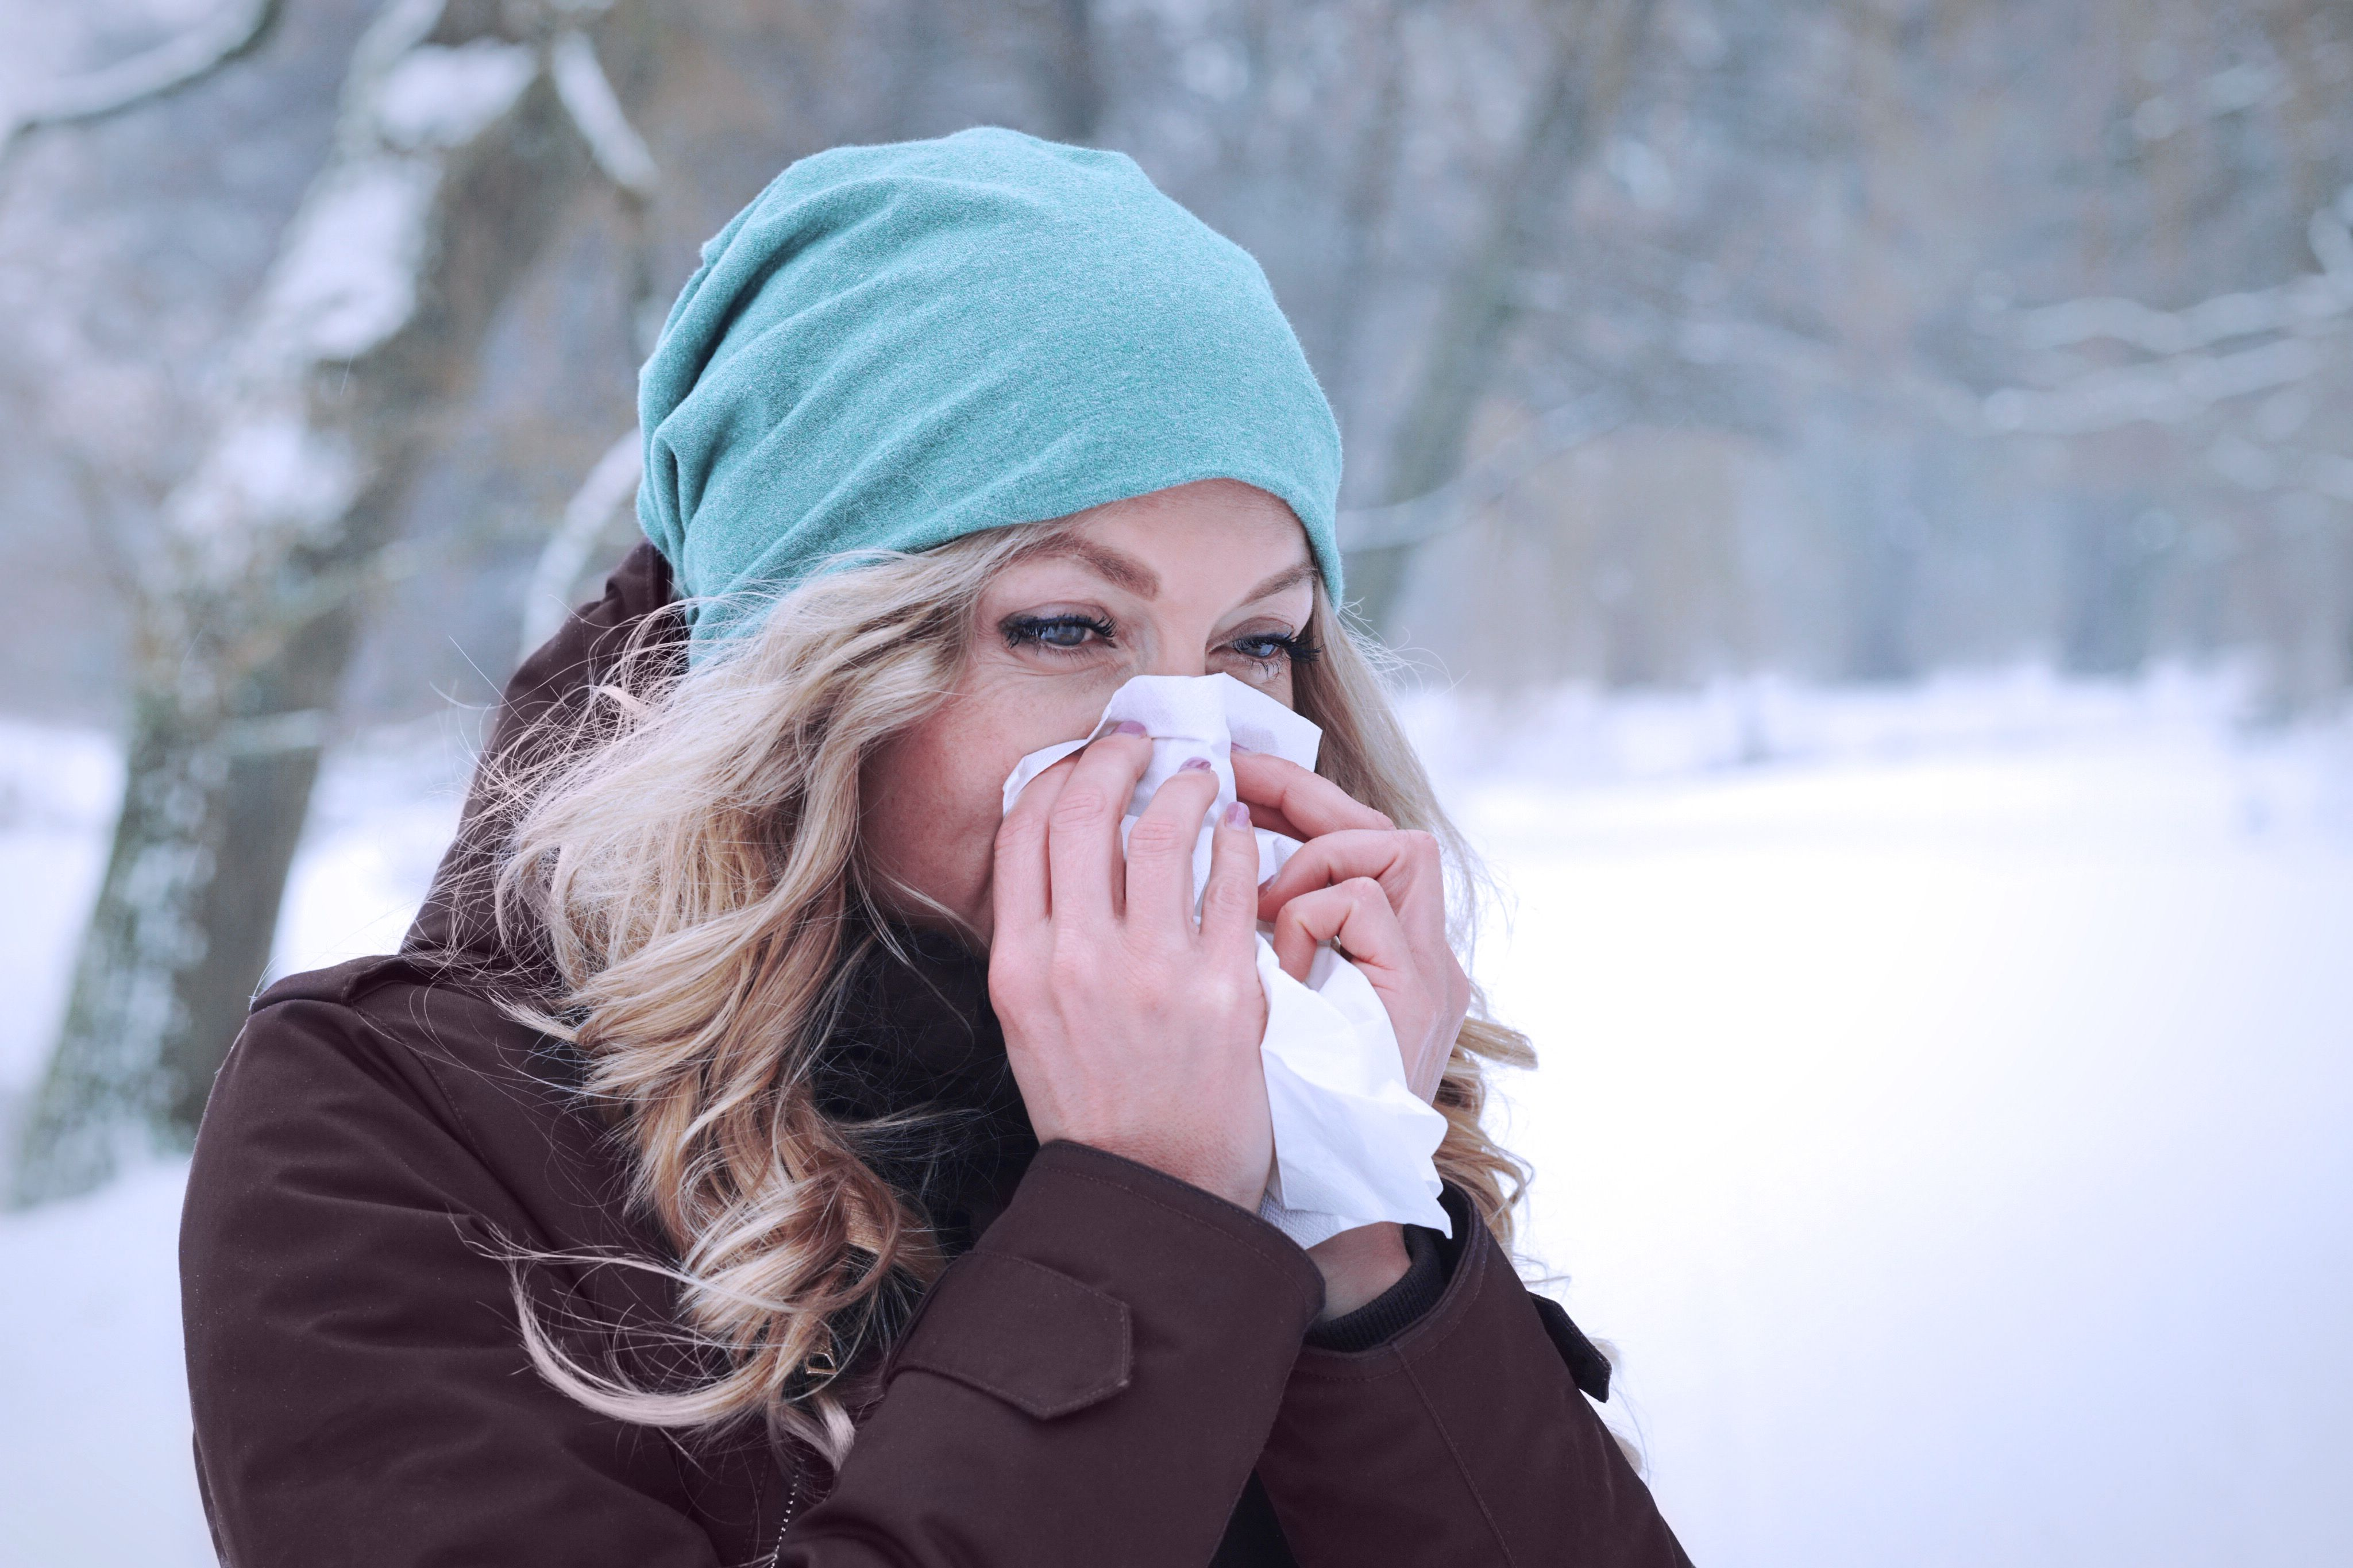 Woman blowing nose outside.